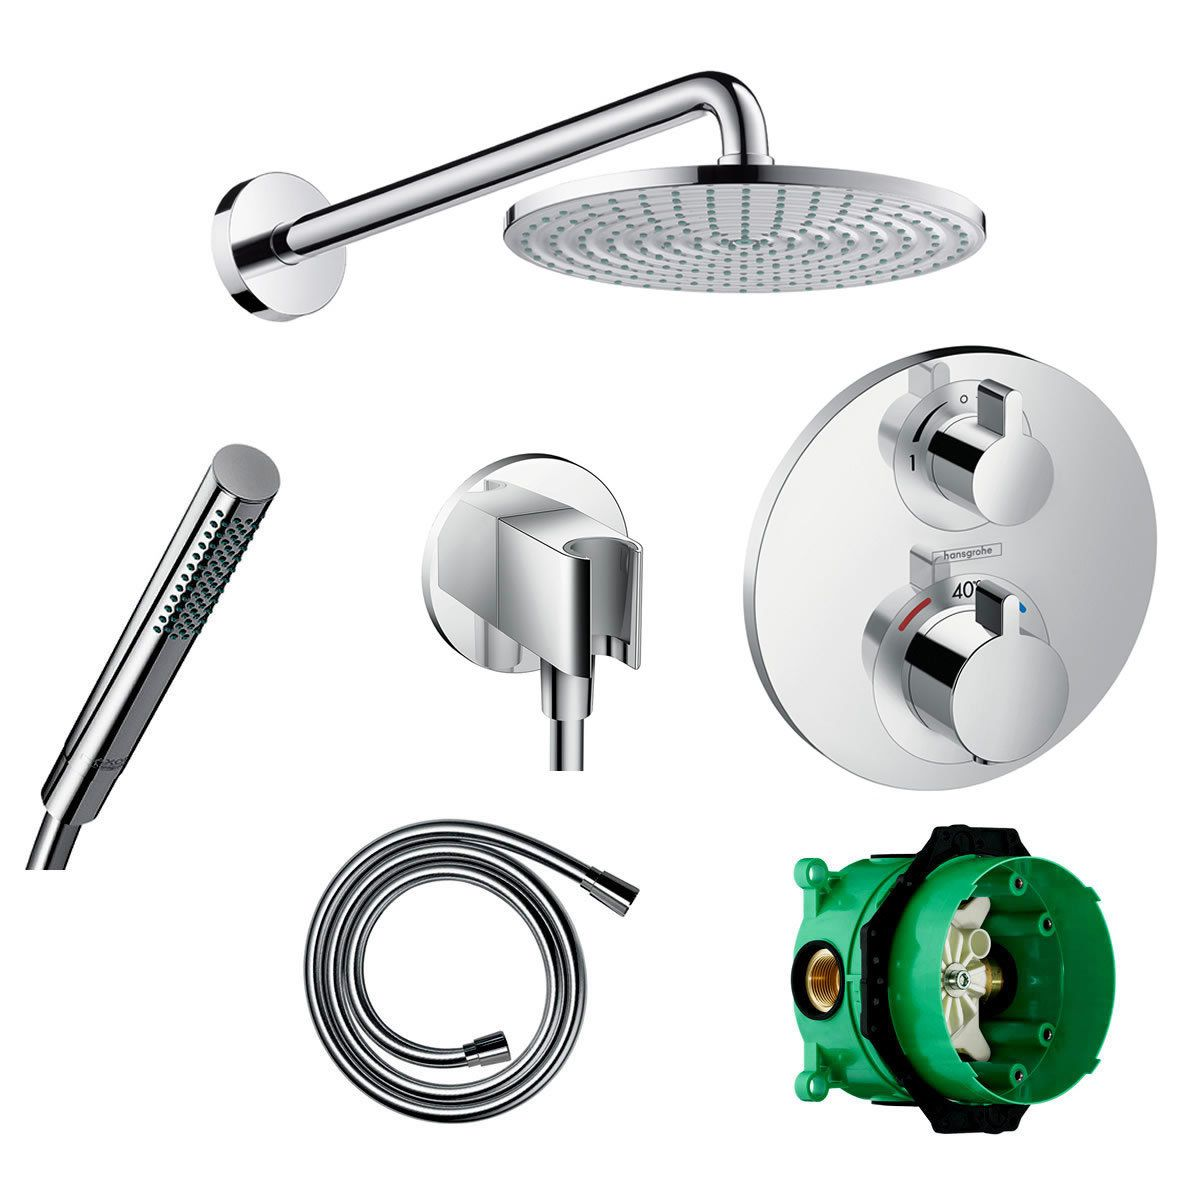 Hansgrohe Round Ecostat Valve with Raindance 240 Overhead Shower and Baton Hand shower